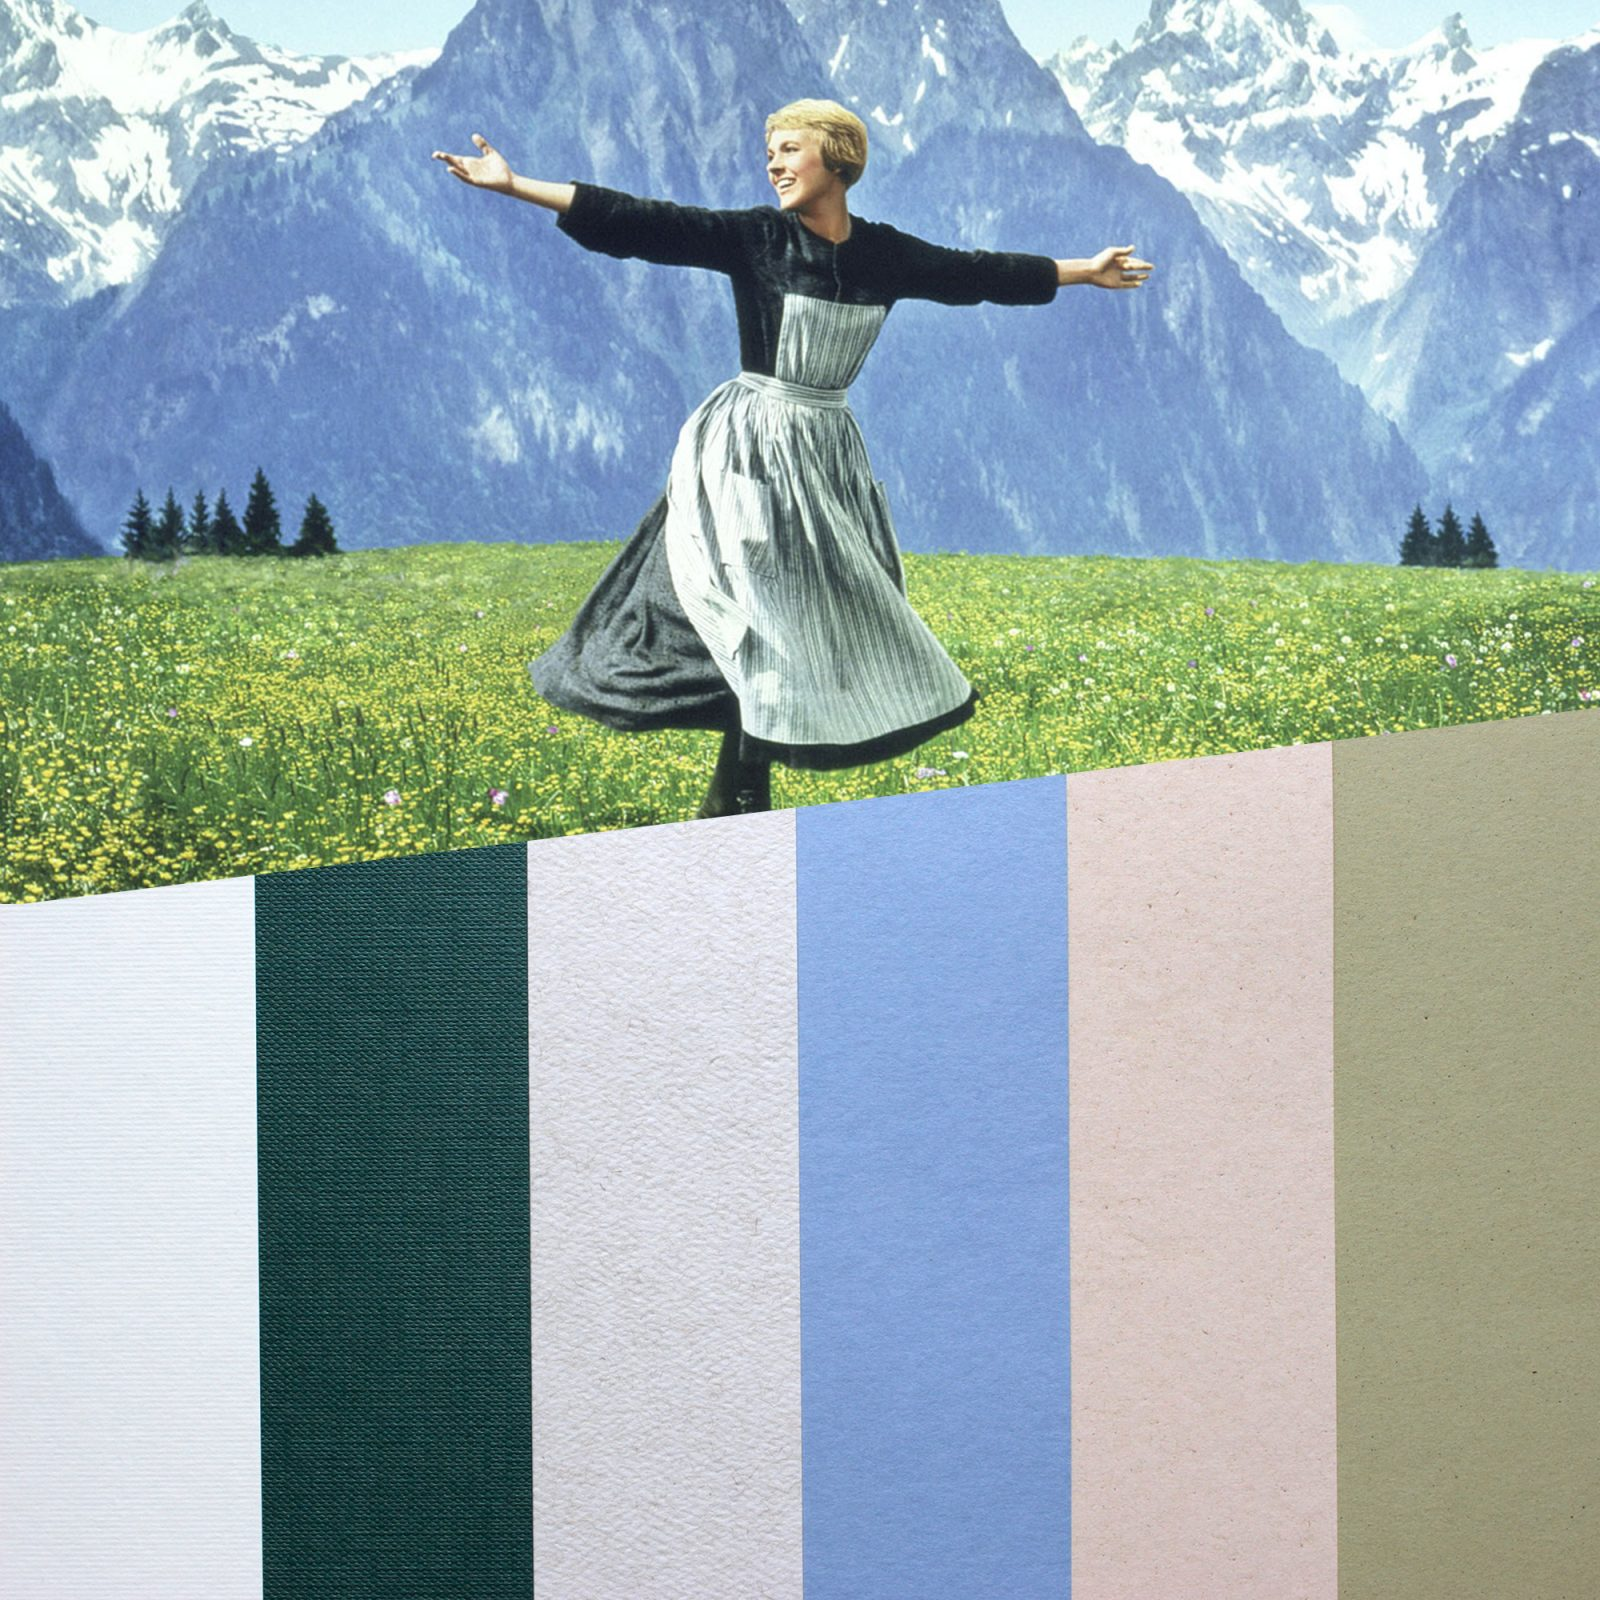 design papers collections inspired by an iconic movie scene - sound of music